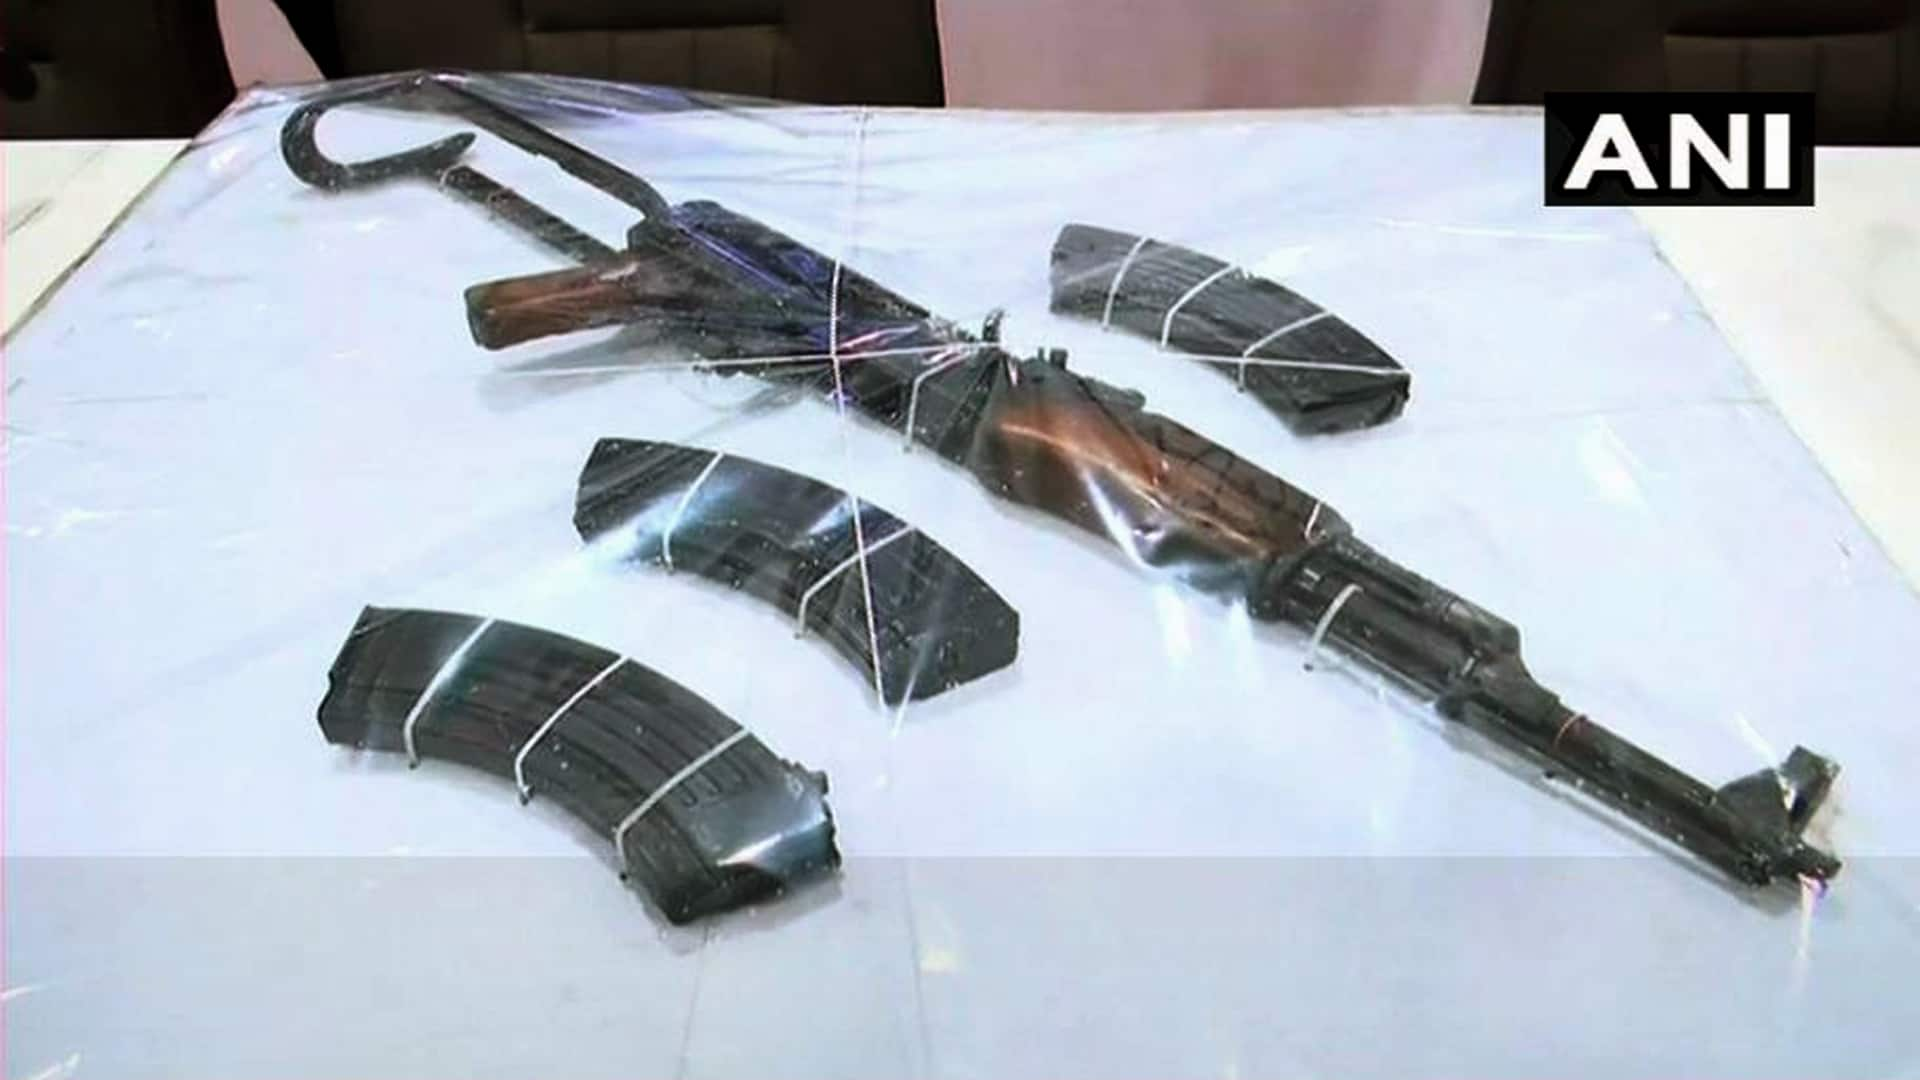 weapons recovered from a house in Mumbai